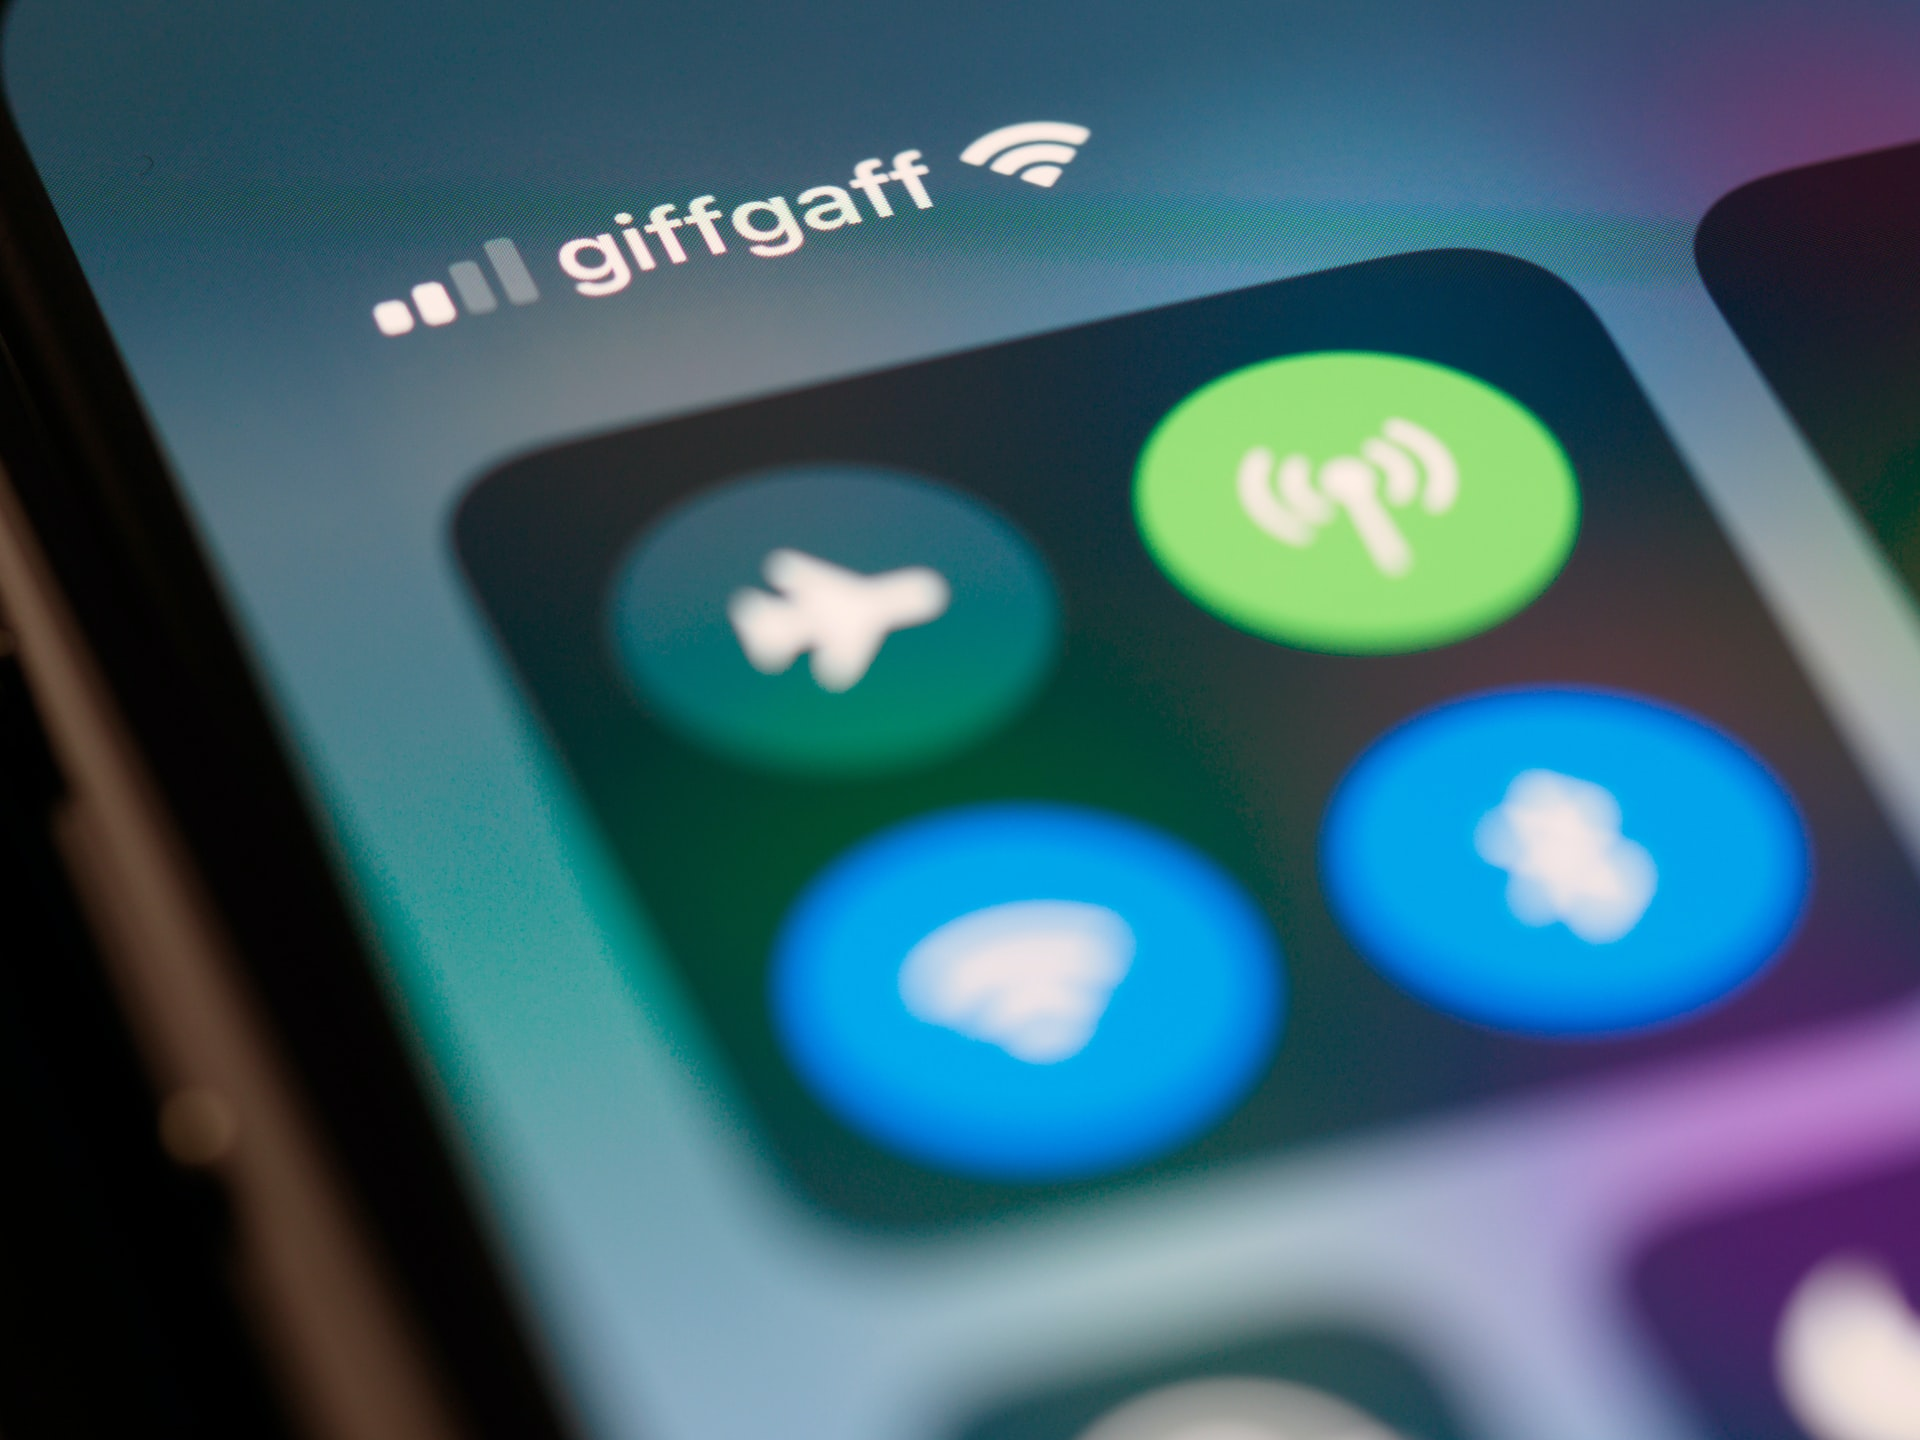 Looking for Free Wi-Fi? See Some Apps That Can Help